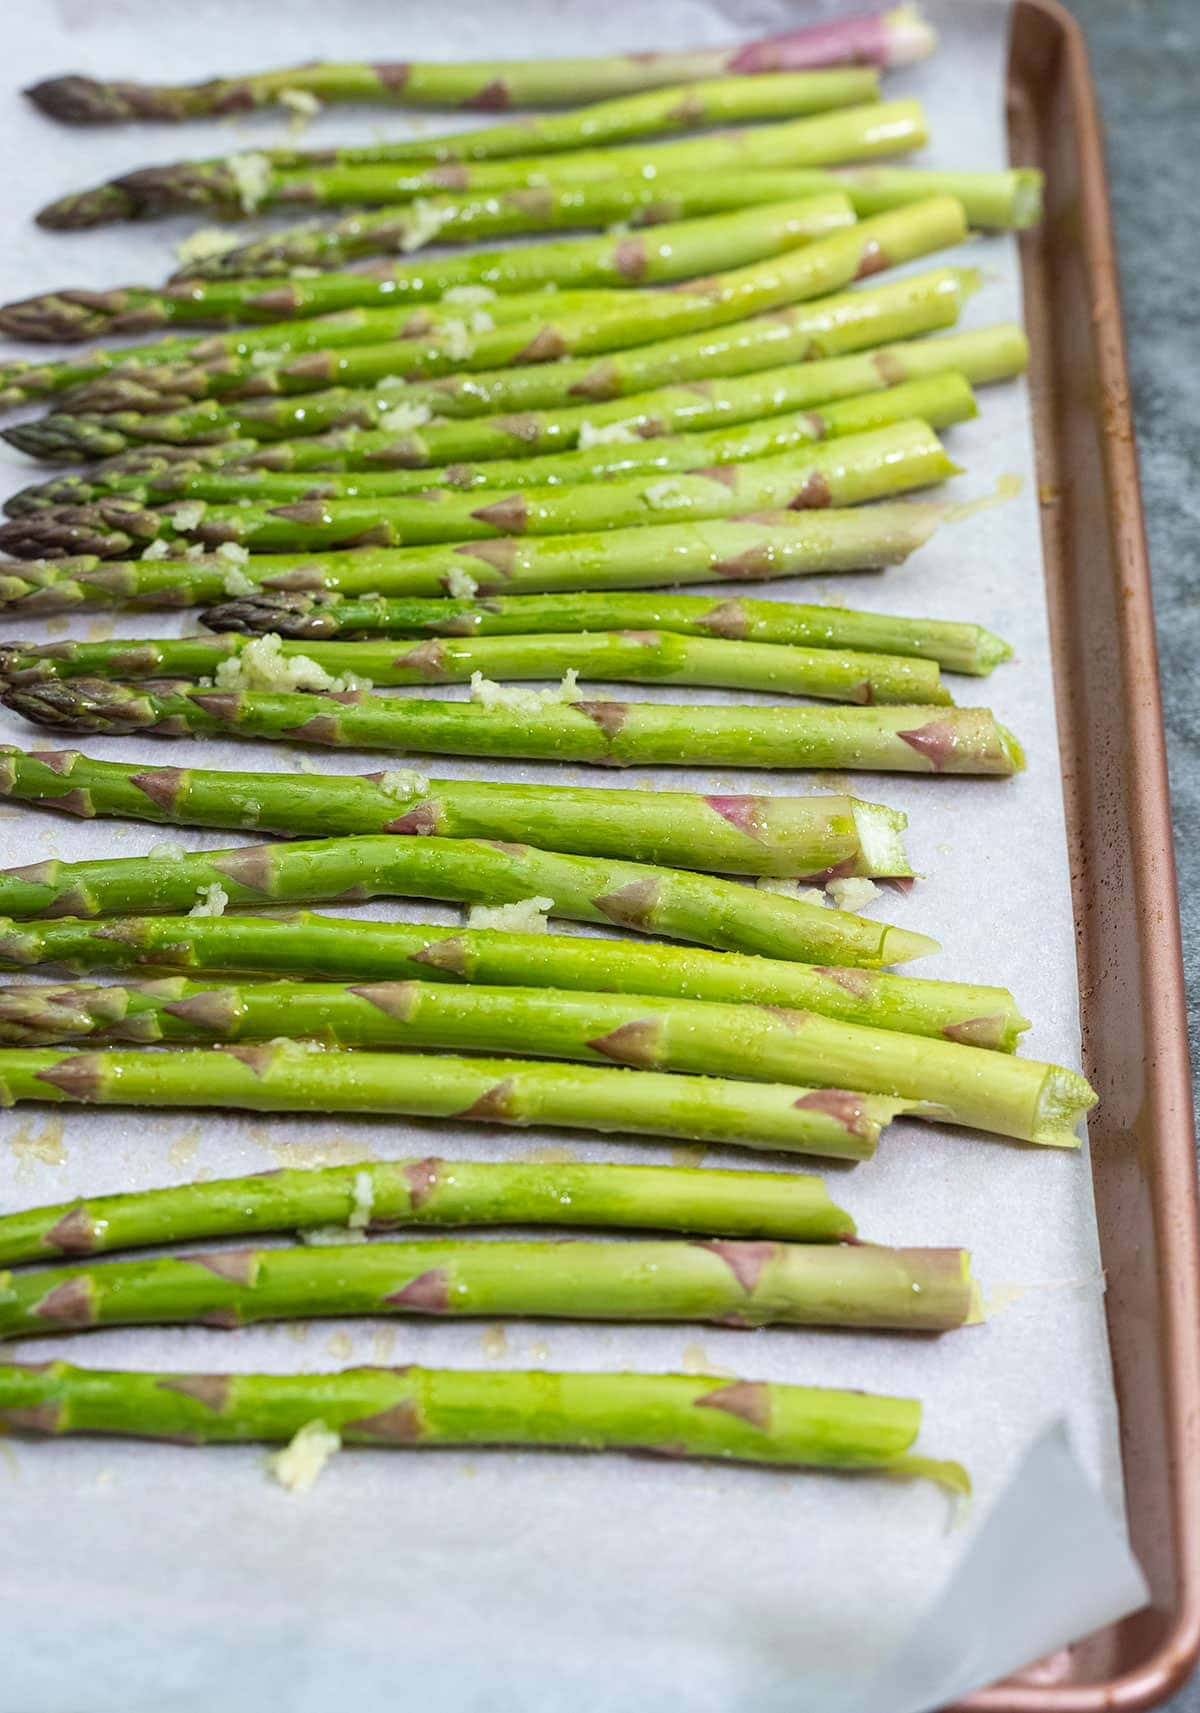 seasoned asparagus on a baking tray with minced garlic